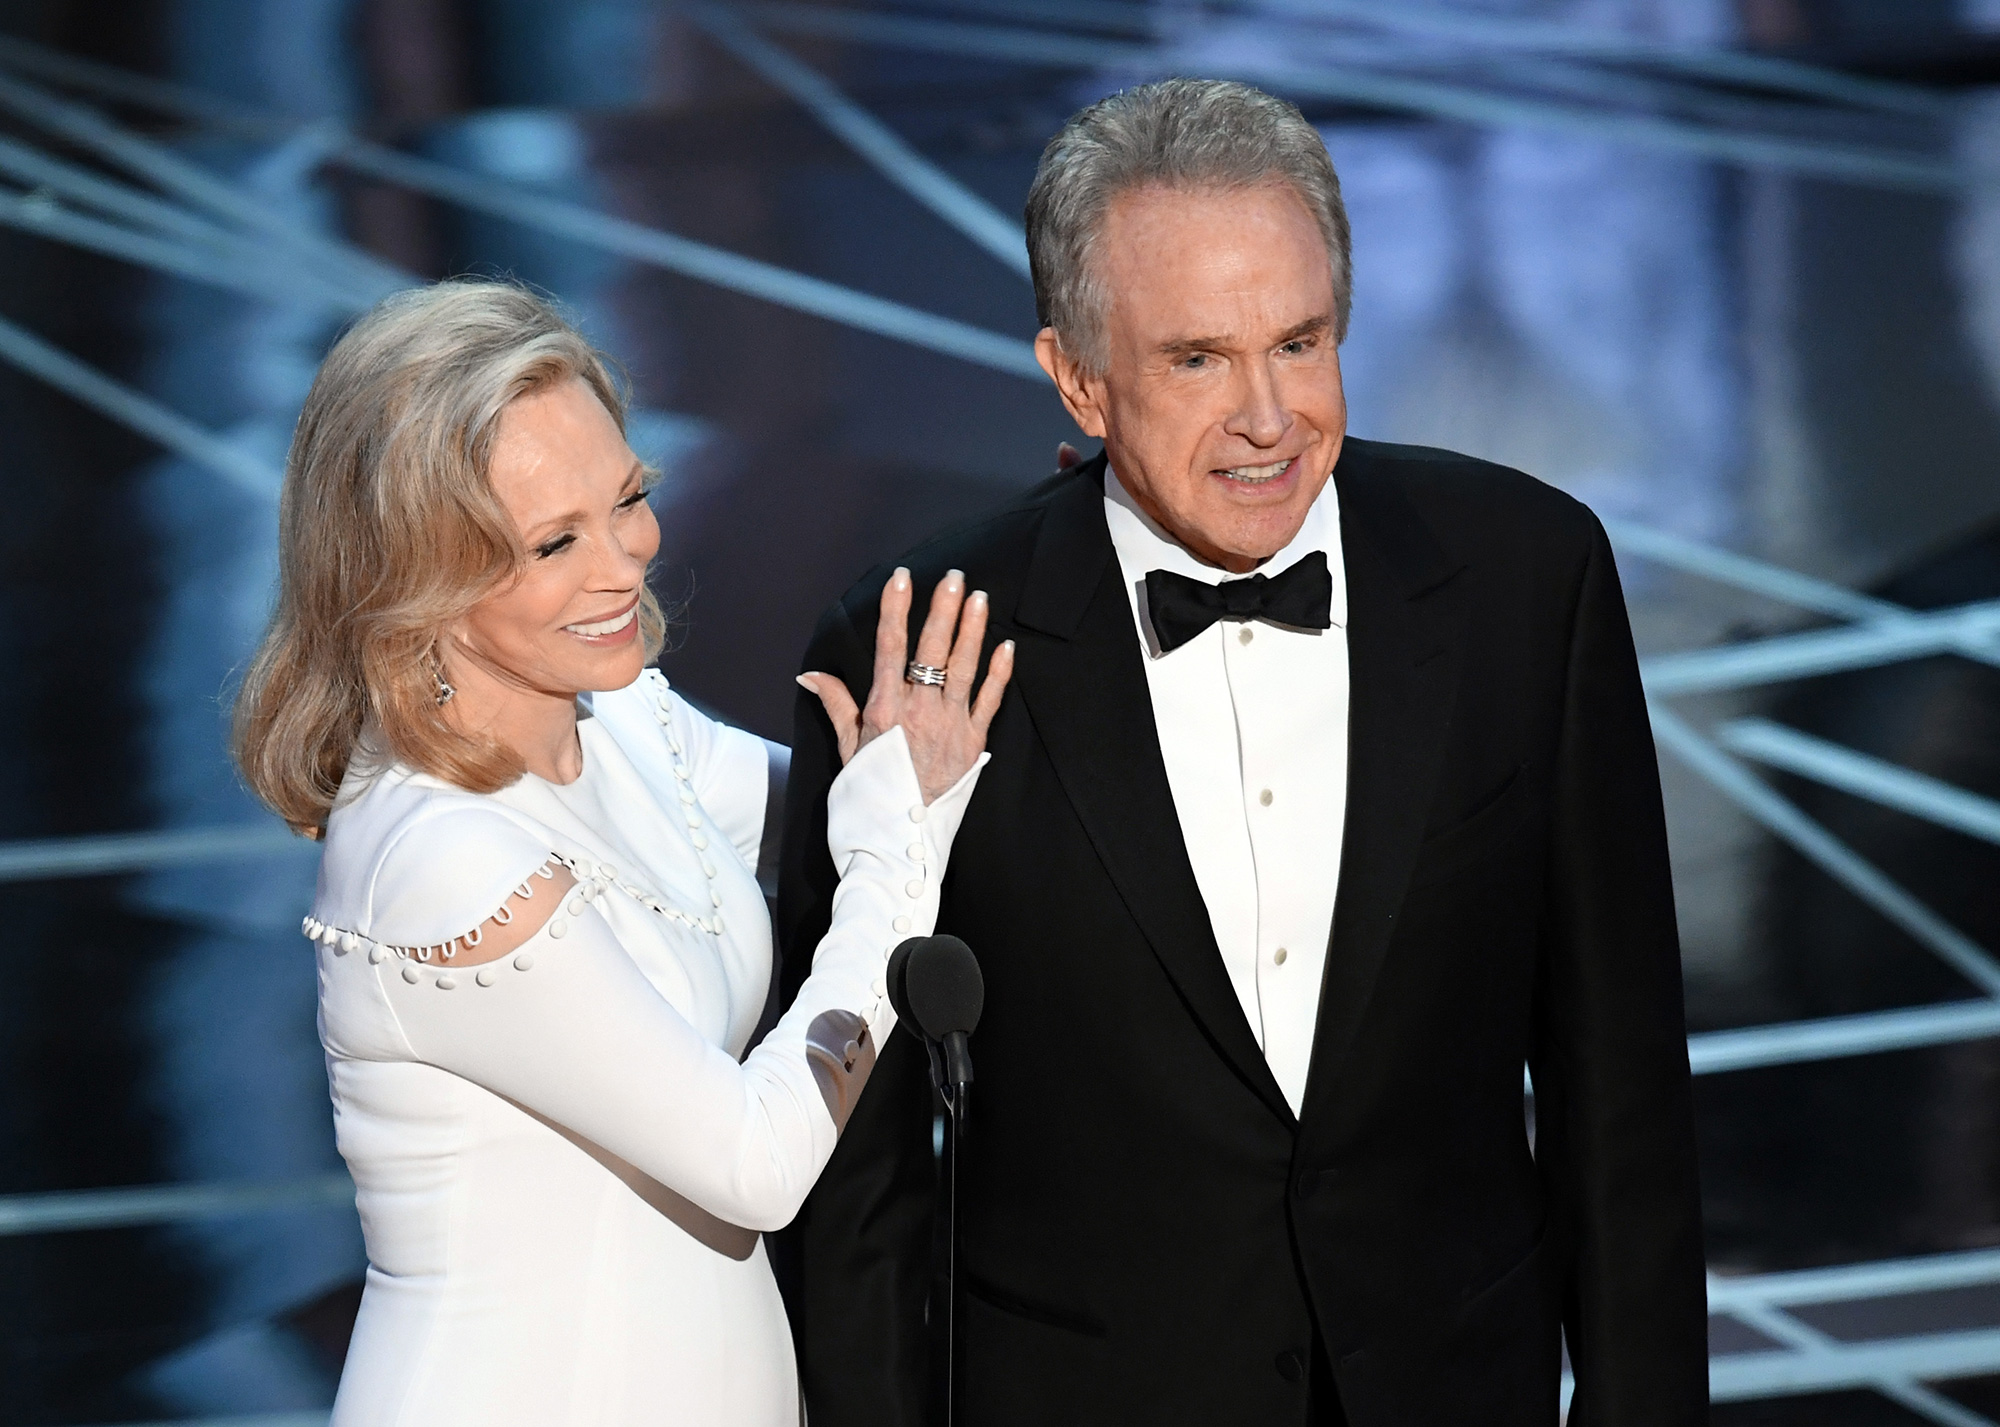 Warren Beatty and Faye Dunaway to announce Best Picture Oscar again